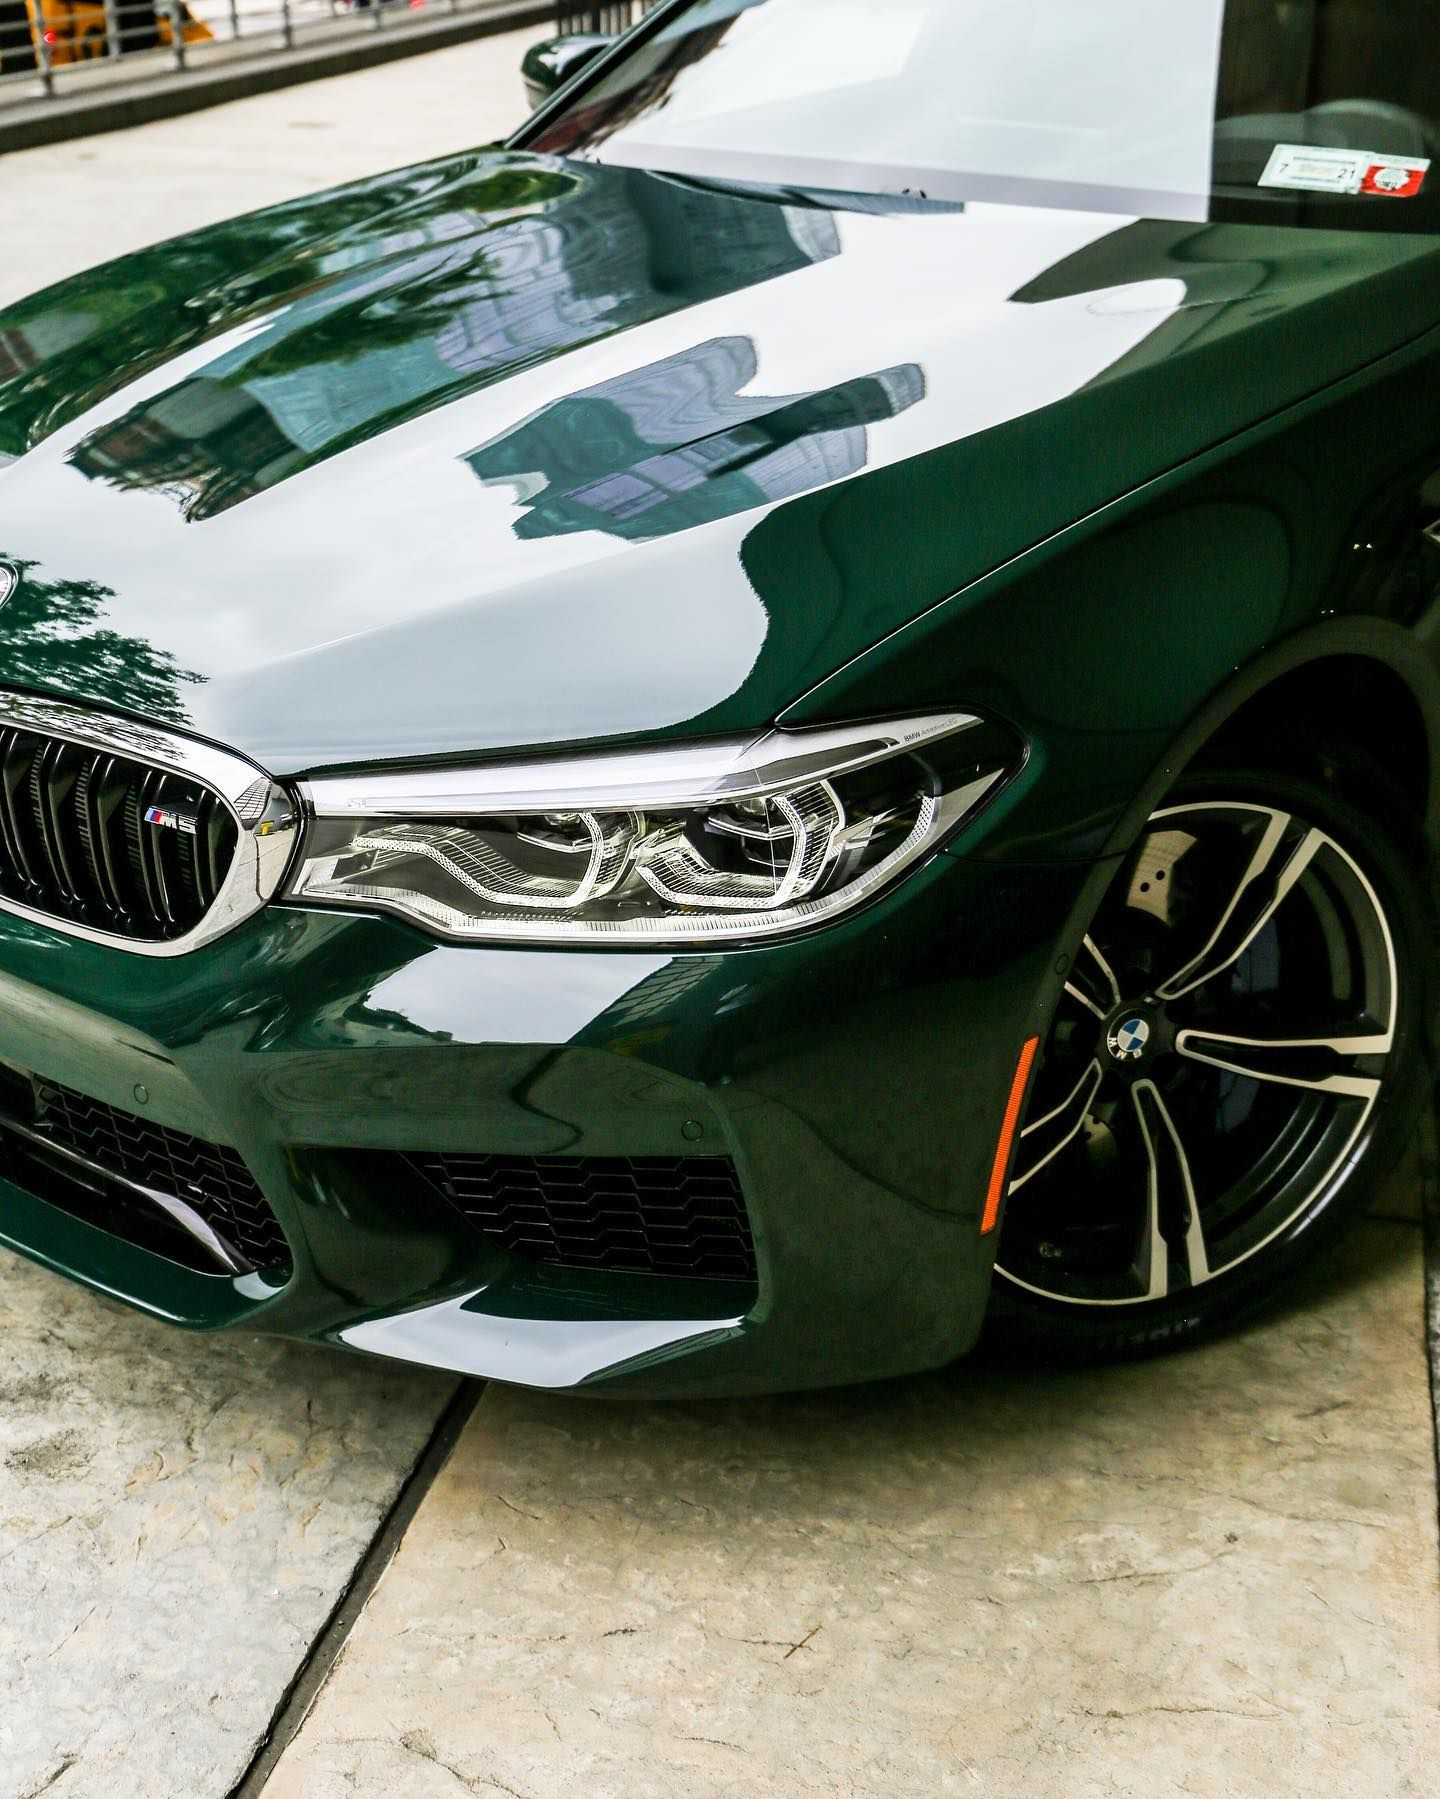 A 2020 Bmw F90 M5 Painted In The British Racing Green From Bmw